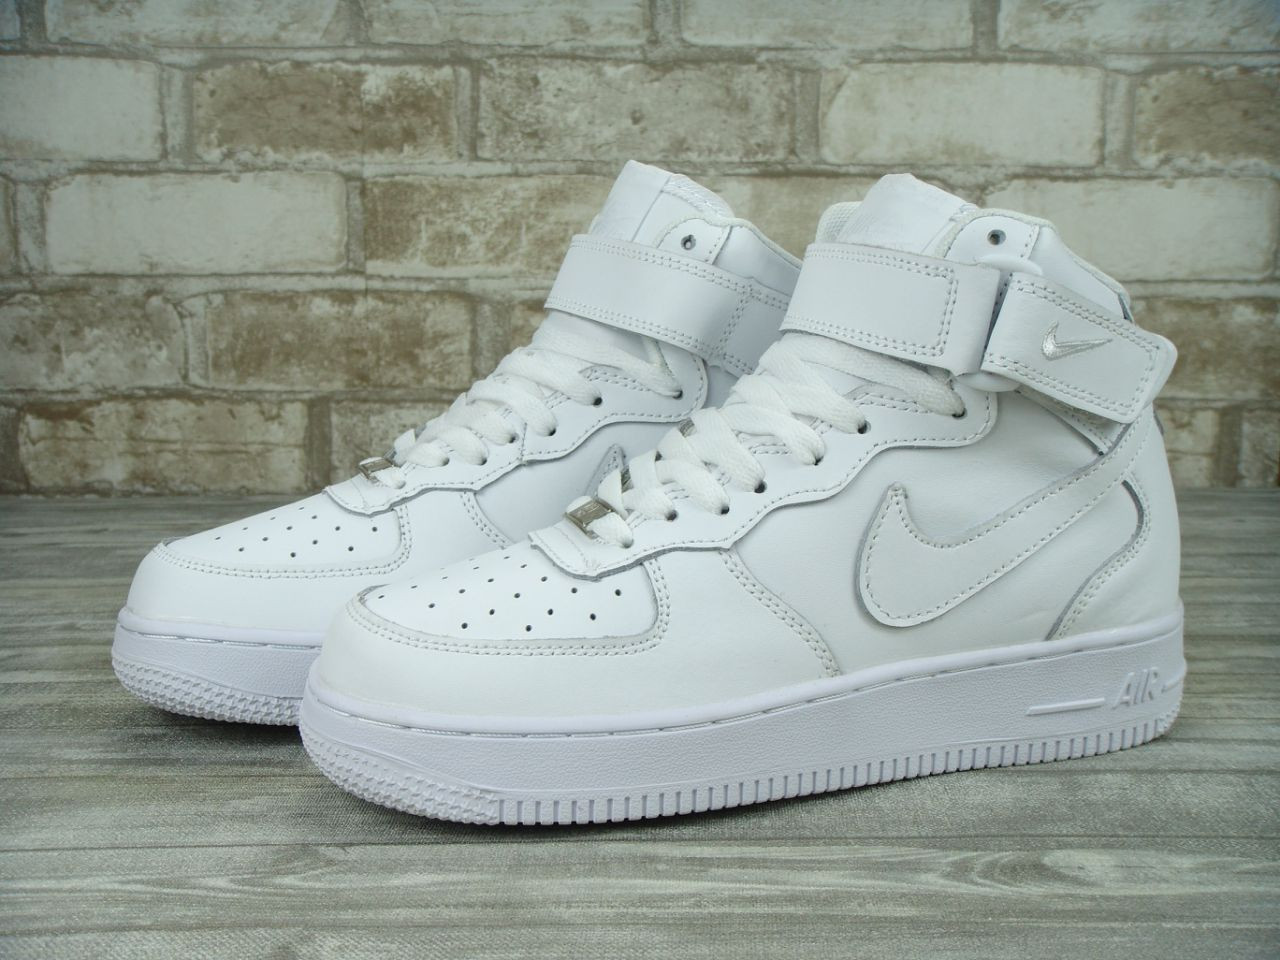 bf8d21c9 Кроссовки Nike Air Force 1 High White(ТОП РЕПЛИКА ААА+), цена 1 216 ...